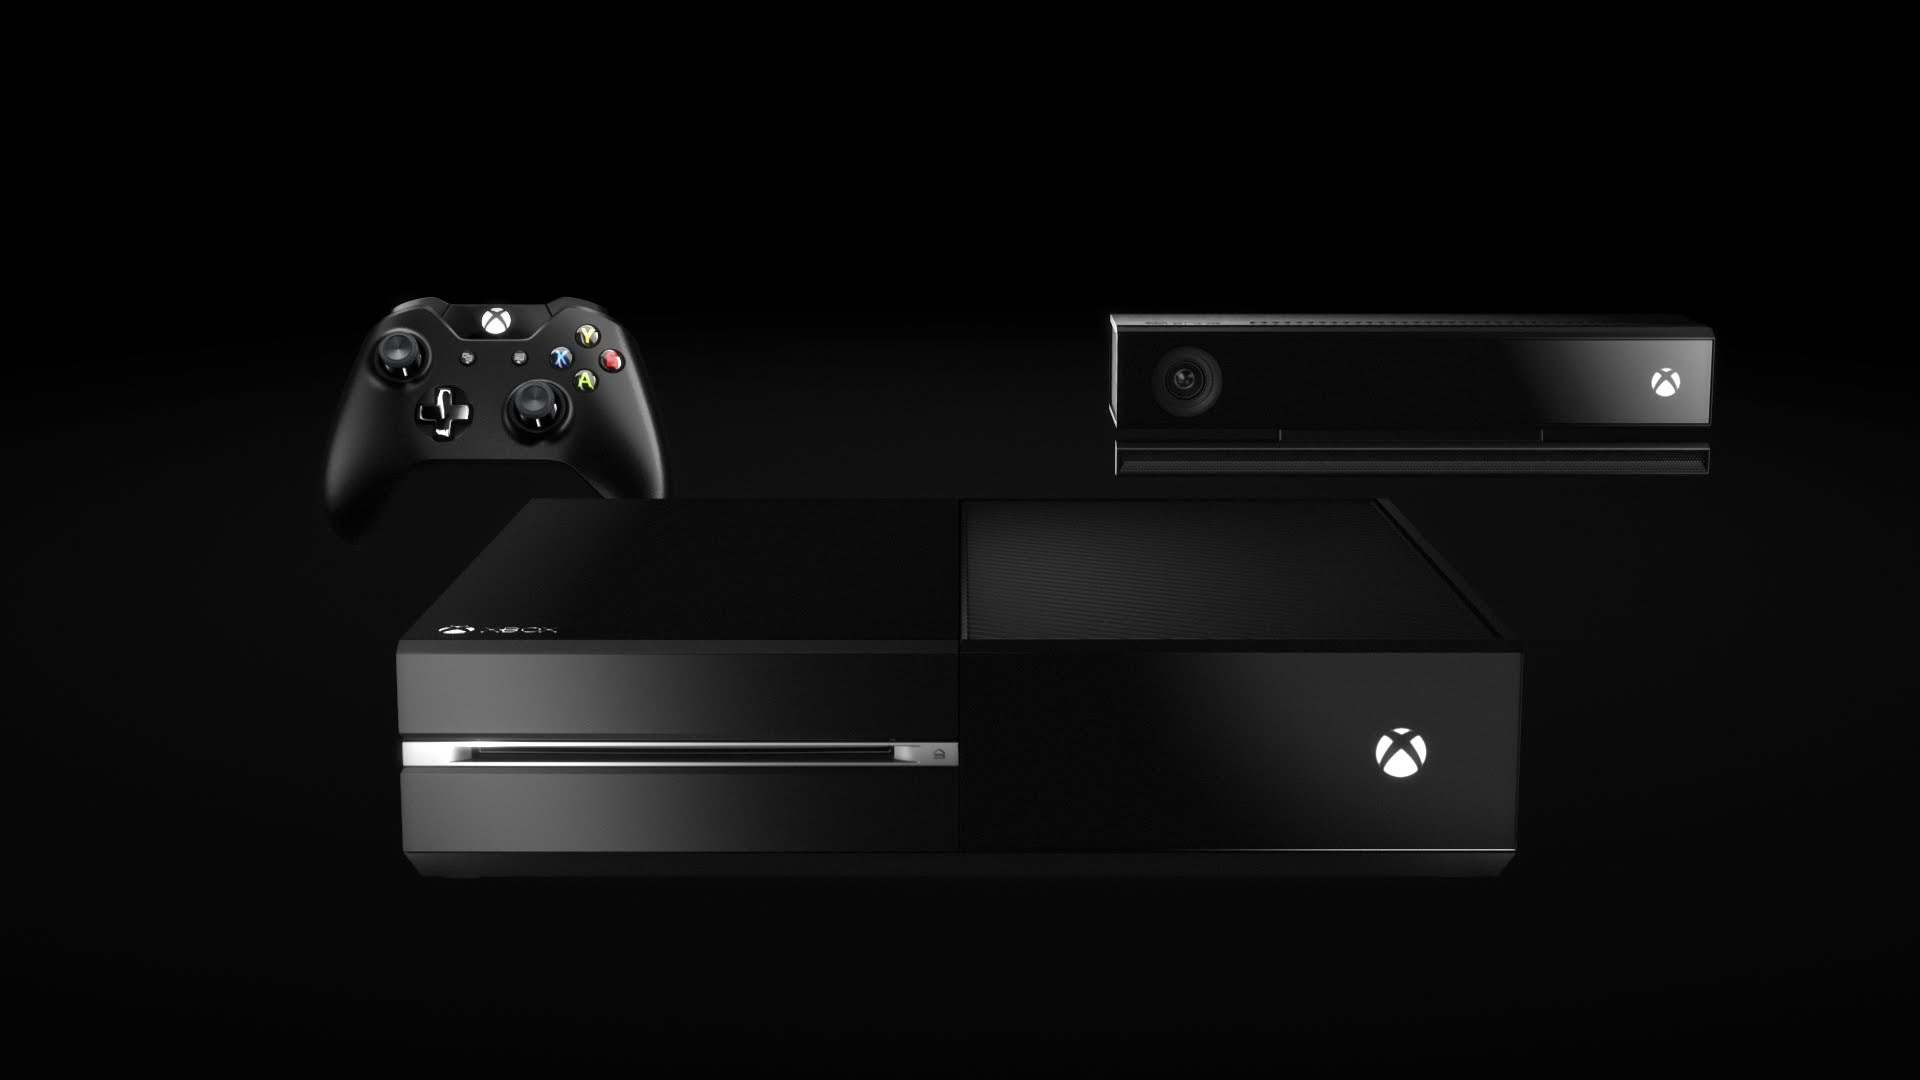 The Galaxy S4 Wallpaper I Just Pinned: Xbox One Galaxy Wallpaper